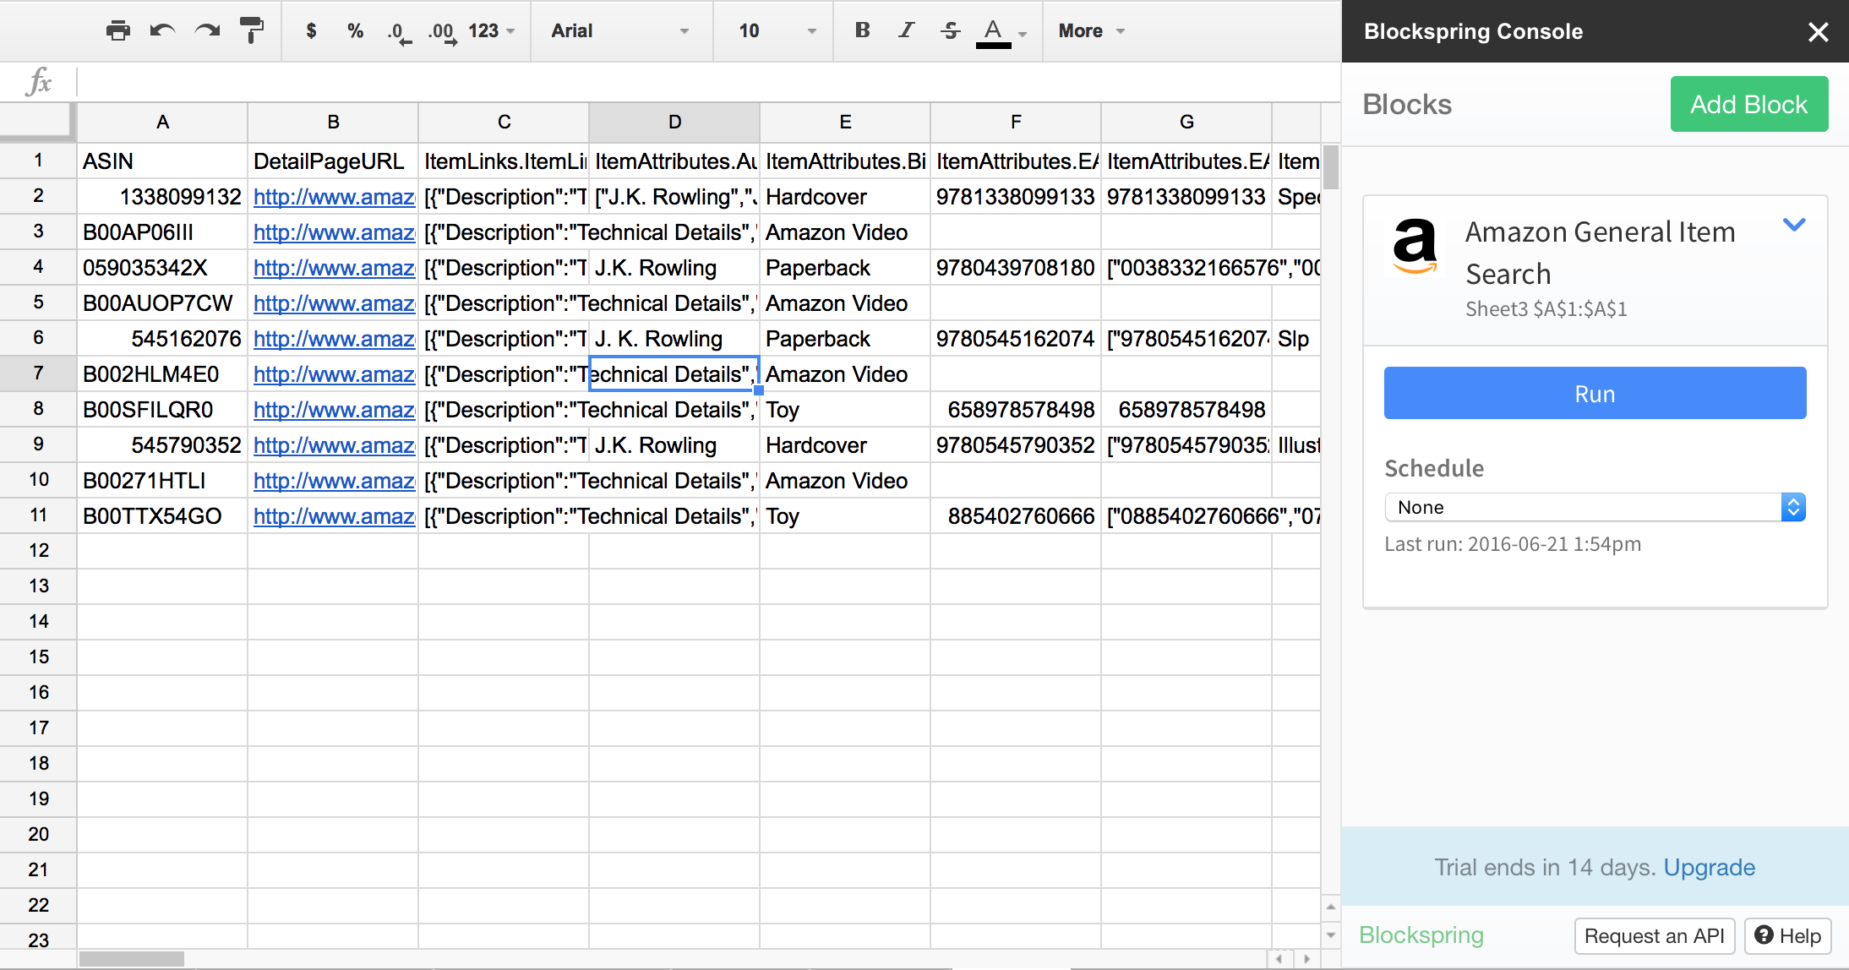 list of jobs that use spreadsheets 3 jobs that use spreadsheets jobs that use spreadsheets jobs that use excel spreadsheets  Jobs That Use Spreadsheets Regarding 50 Google Sheets Addons To Supercharge Your Spreadsheets  The Jobs That Use Spreadsheets Google Spreadshee